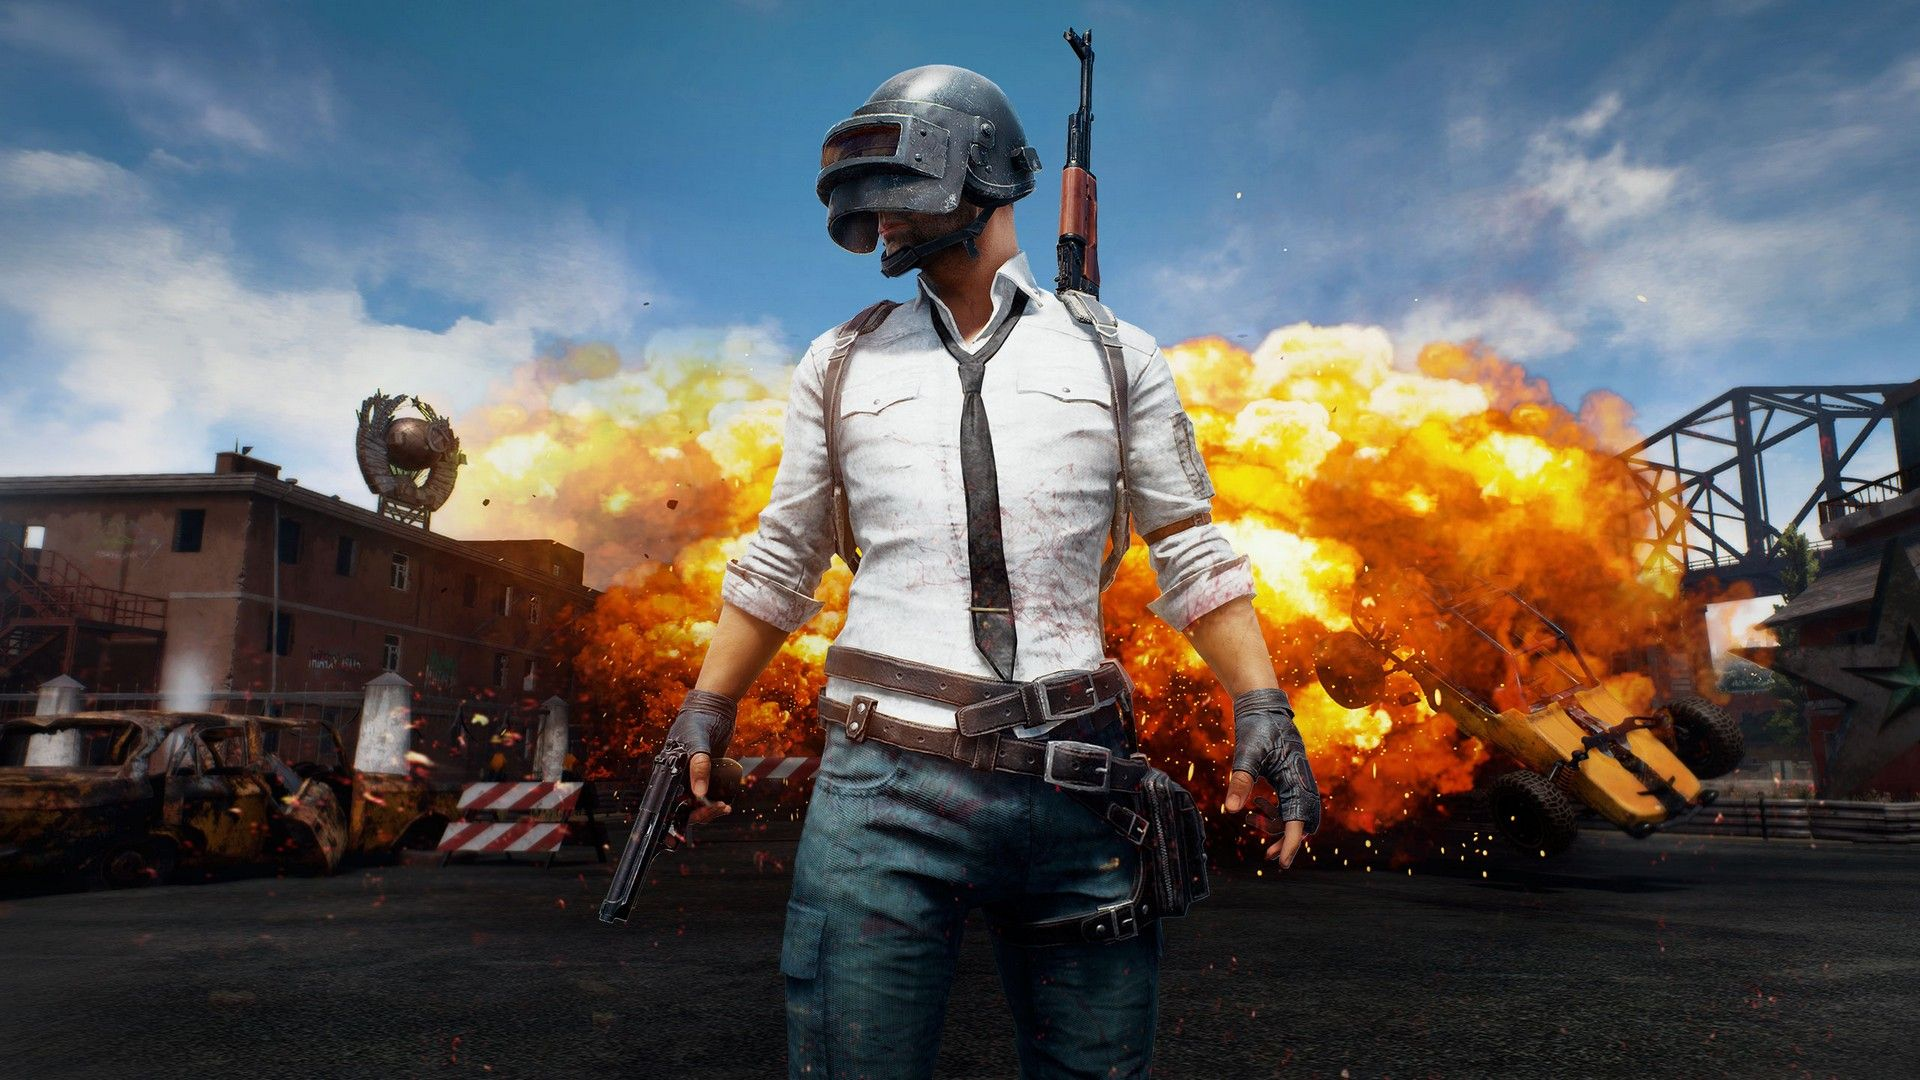 Pubg Lite Wallpaper Hd: Pubg Weapon Master Wallpaper